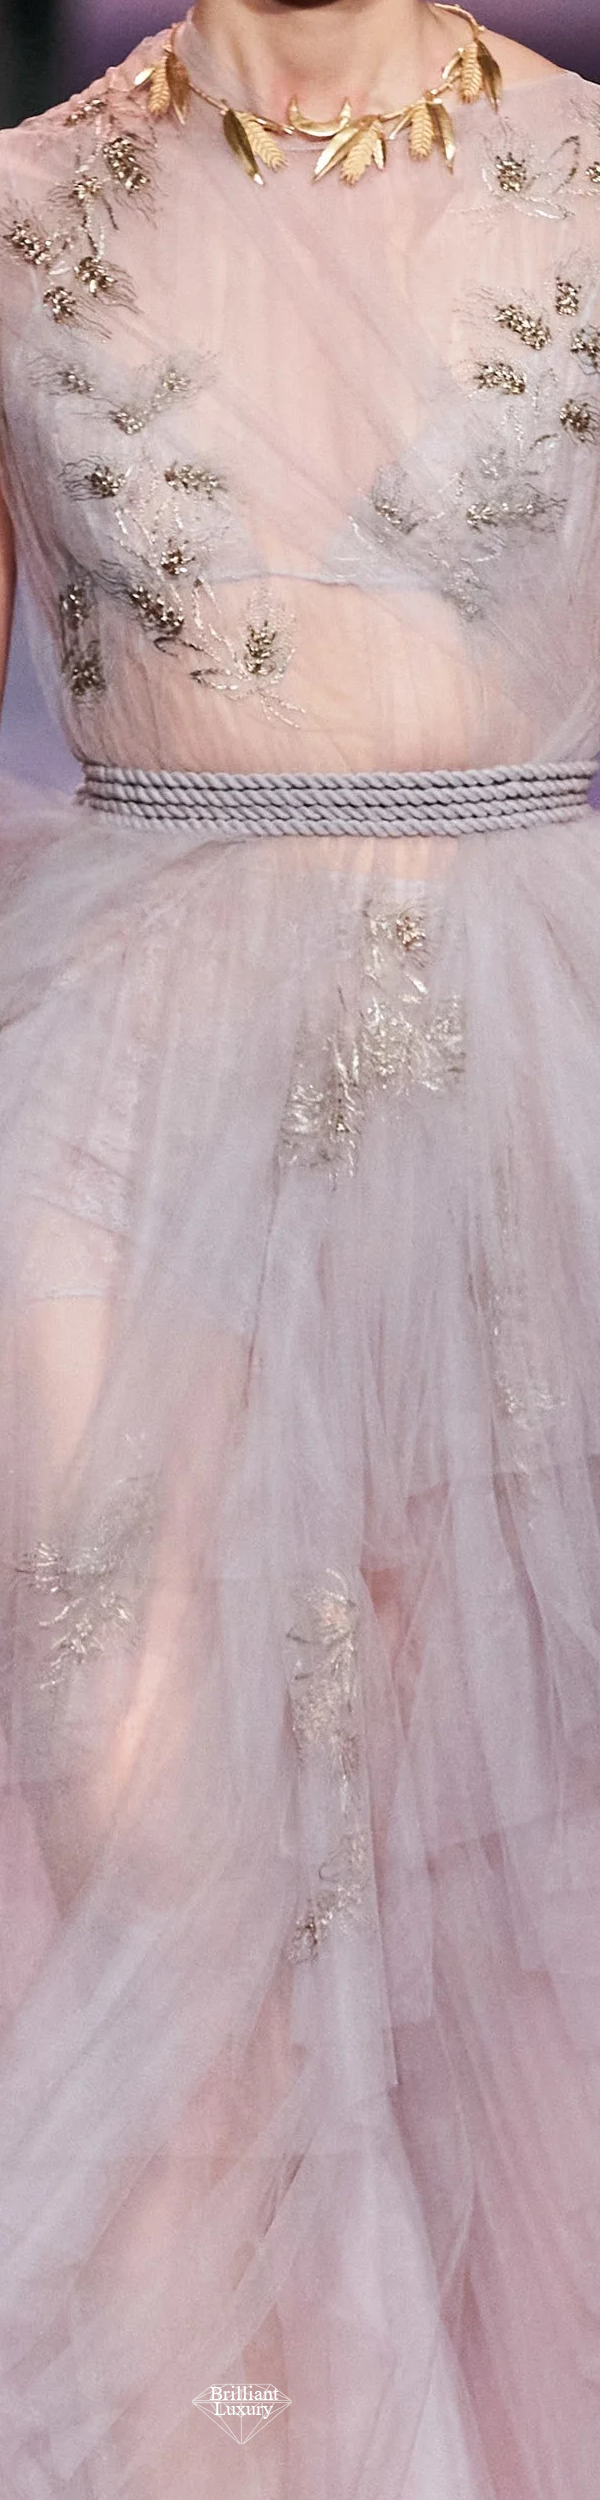 Dior Chiffon Couture Gown Spring 2020 #fashion